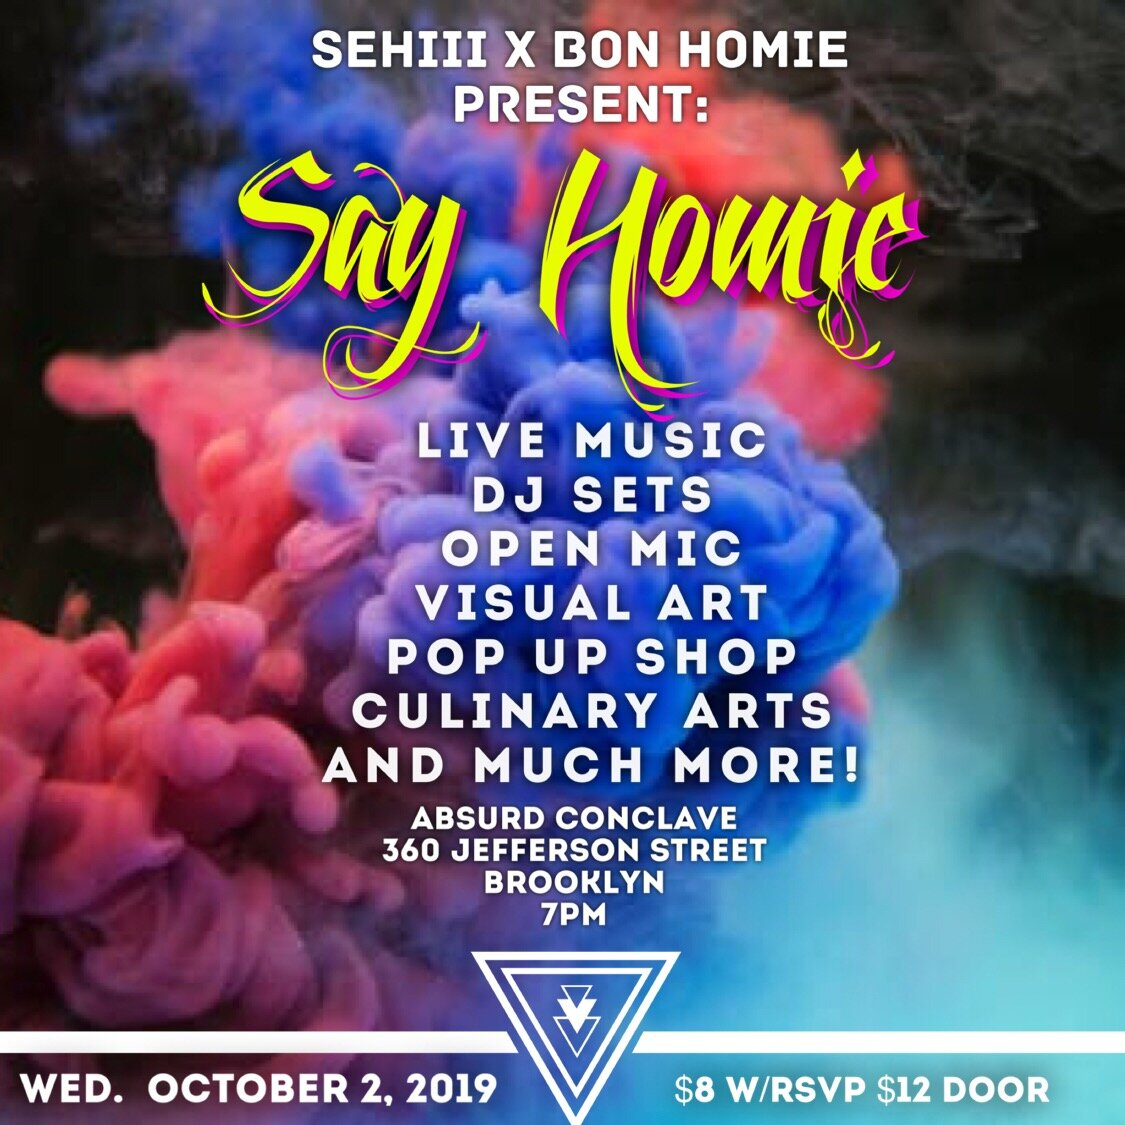 Wednesday October 2, 2019 @SehiiiNYC x @Bonhomienyc Present: Say Homie  •Live Performances •Live Dj Sets •Open Mic •Live Art Exhibition •Photography •Vendor Pop Up and much more!! Absurd Conclave (@AbsurdConclave.bk)  360 Jefferson Street  Brooklyn New York, NY  7pm  $8 w/RSVP $12 at the door